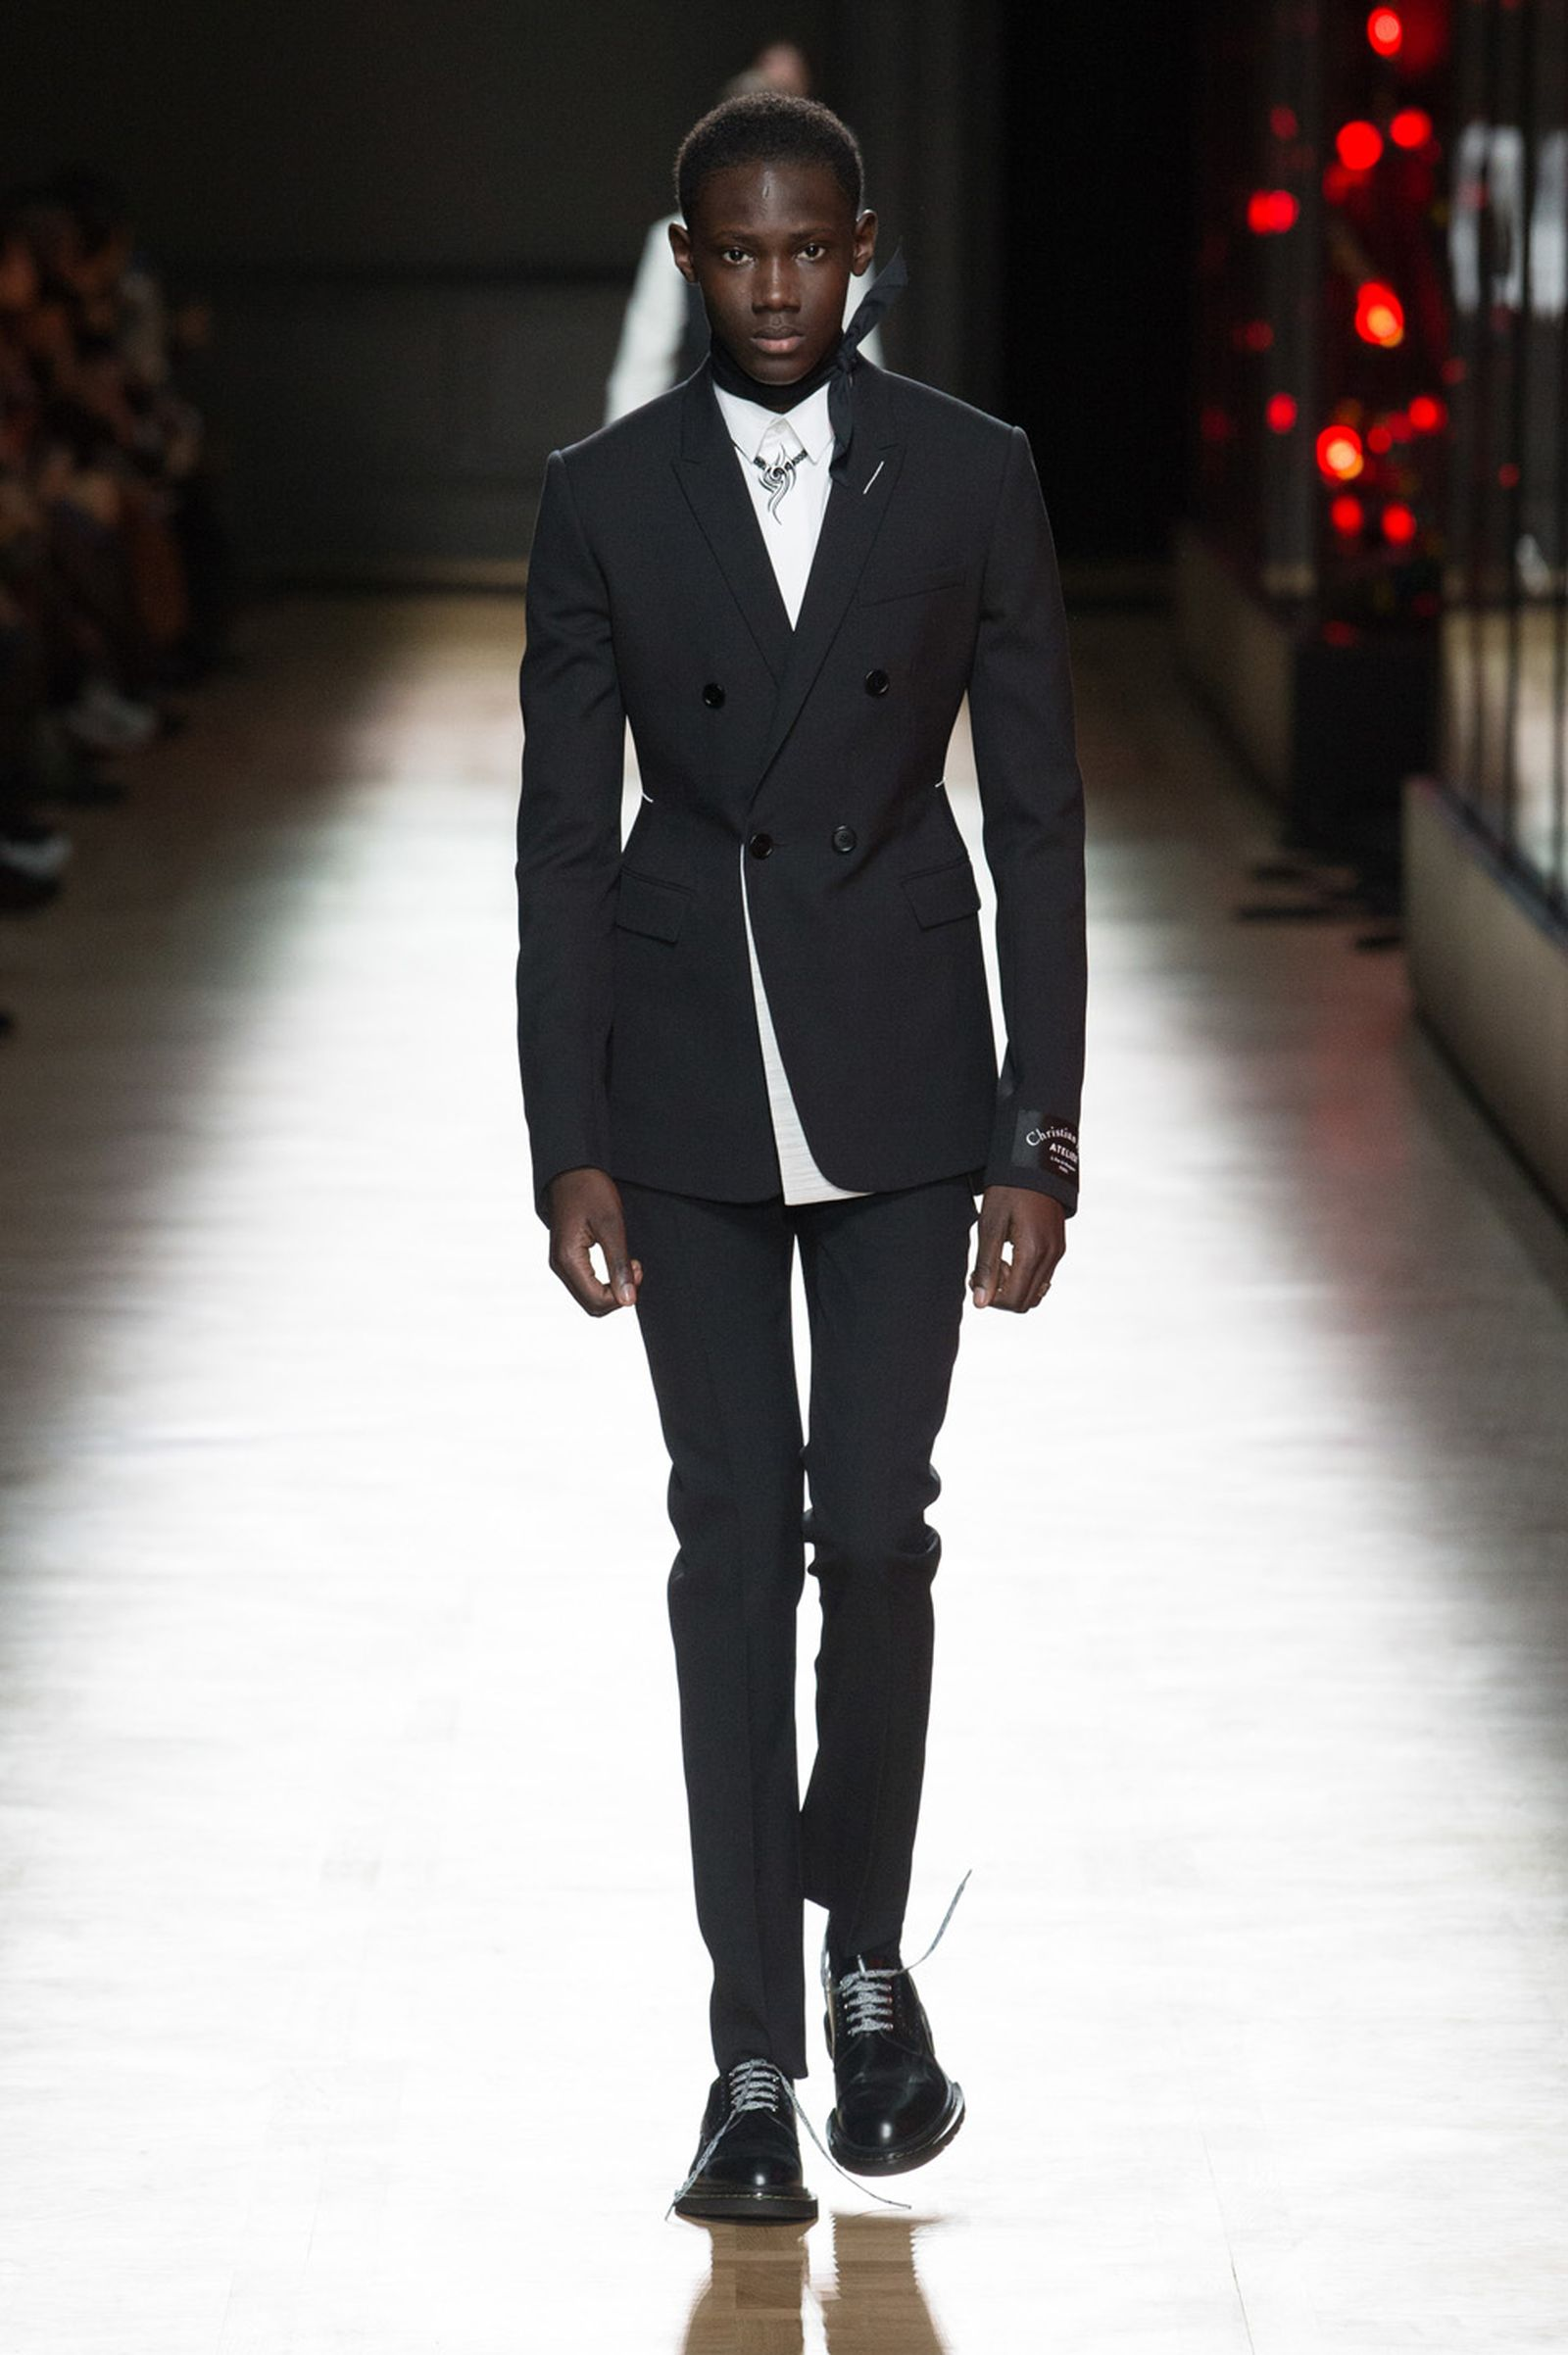 DIOR HOMME WINTER 18 19 BY PATRICE STABLE look06 Fall/WInter 2018 runway